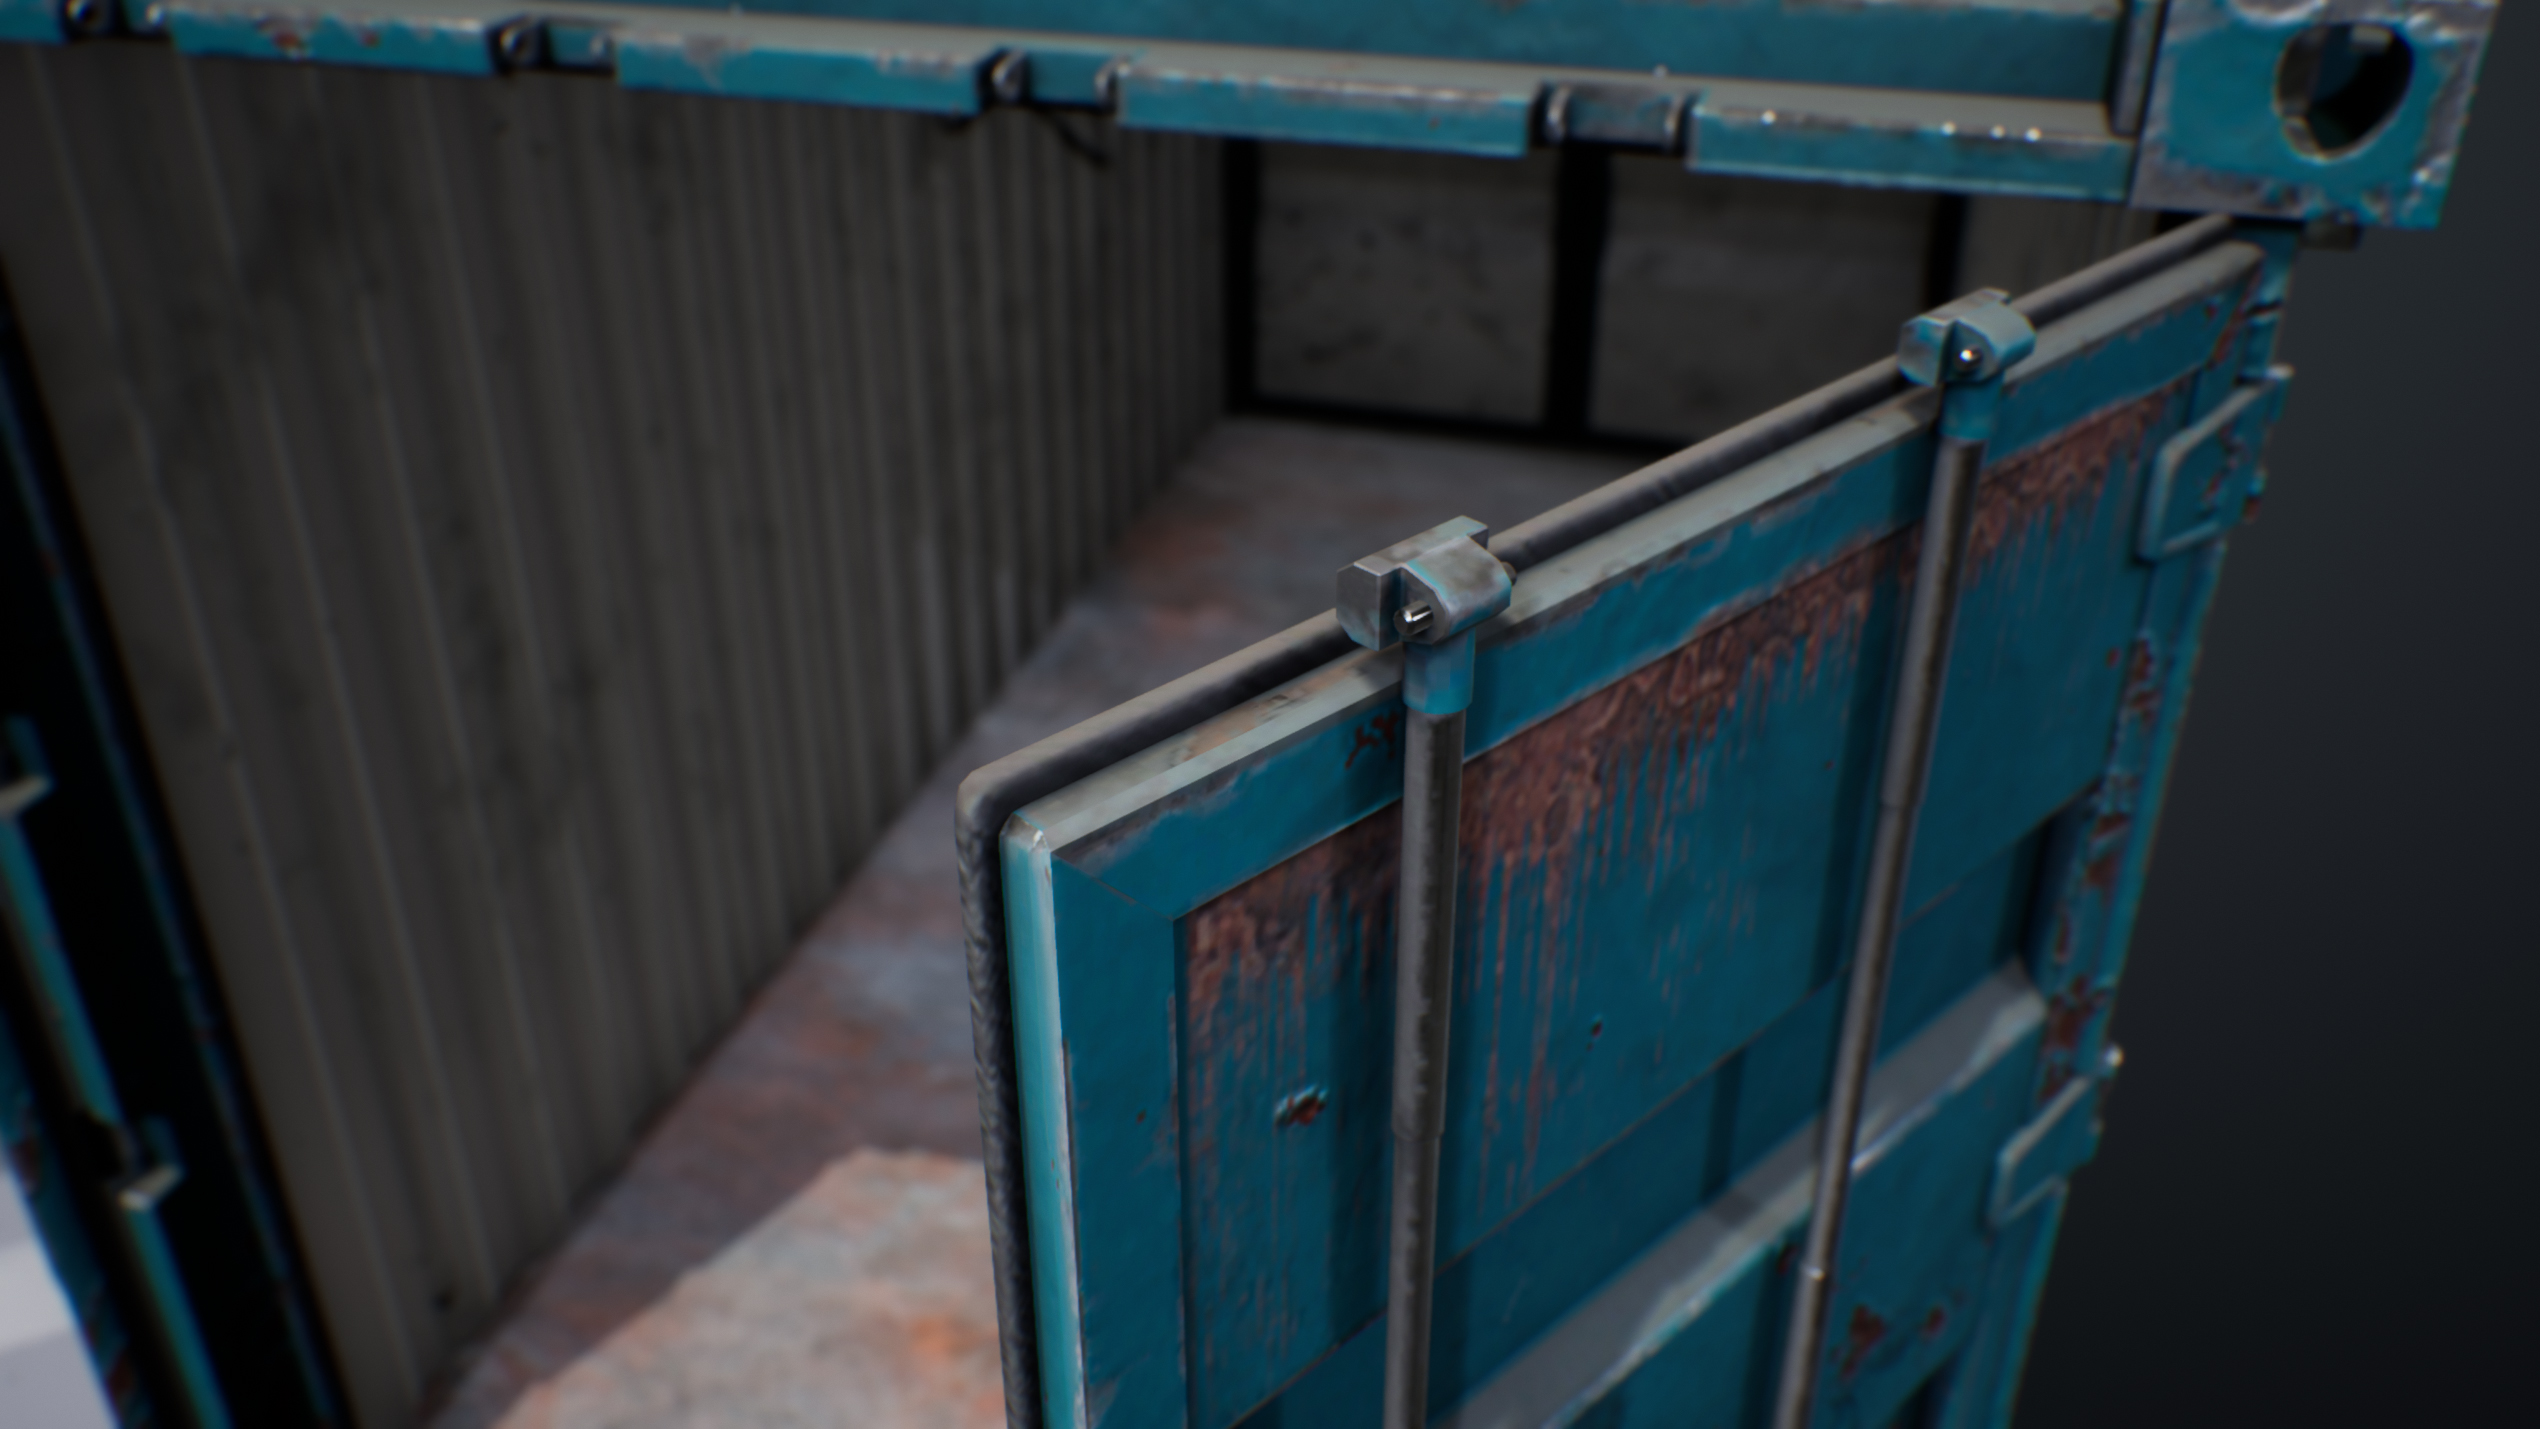 UE4 screenshot detailed shot of the container hinges 3